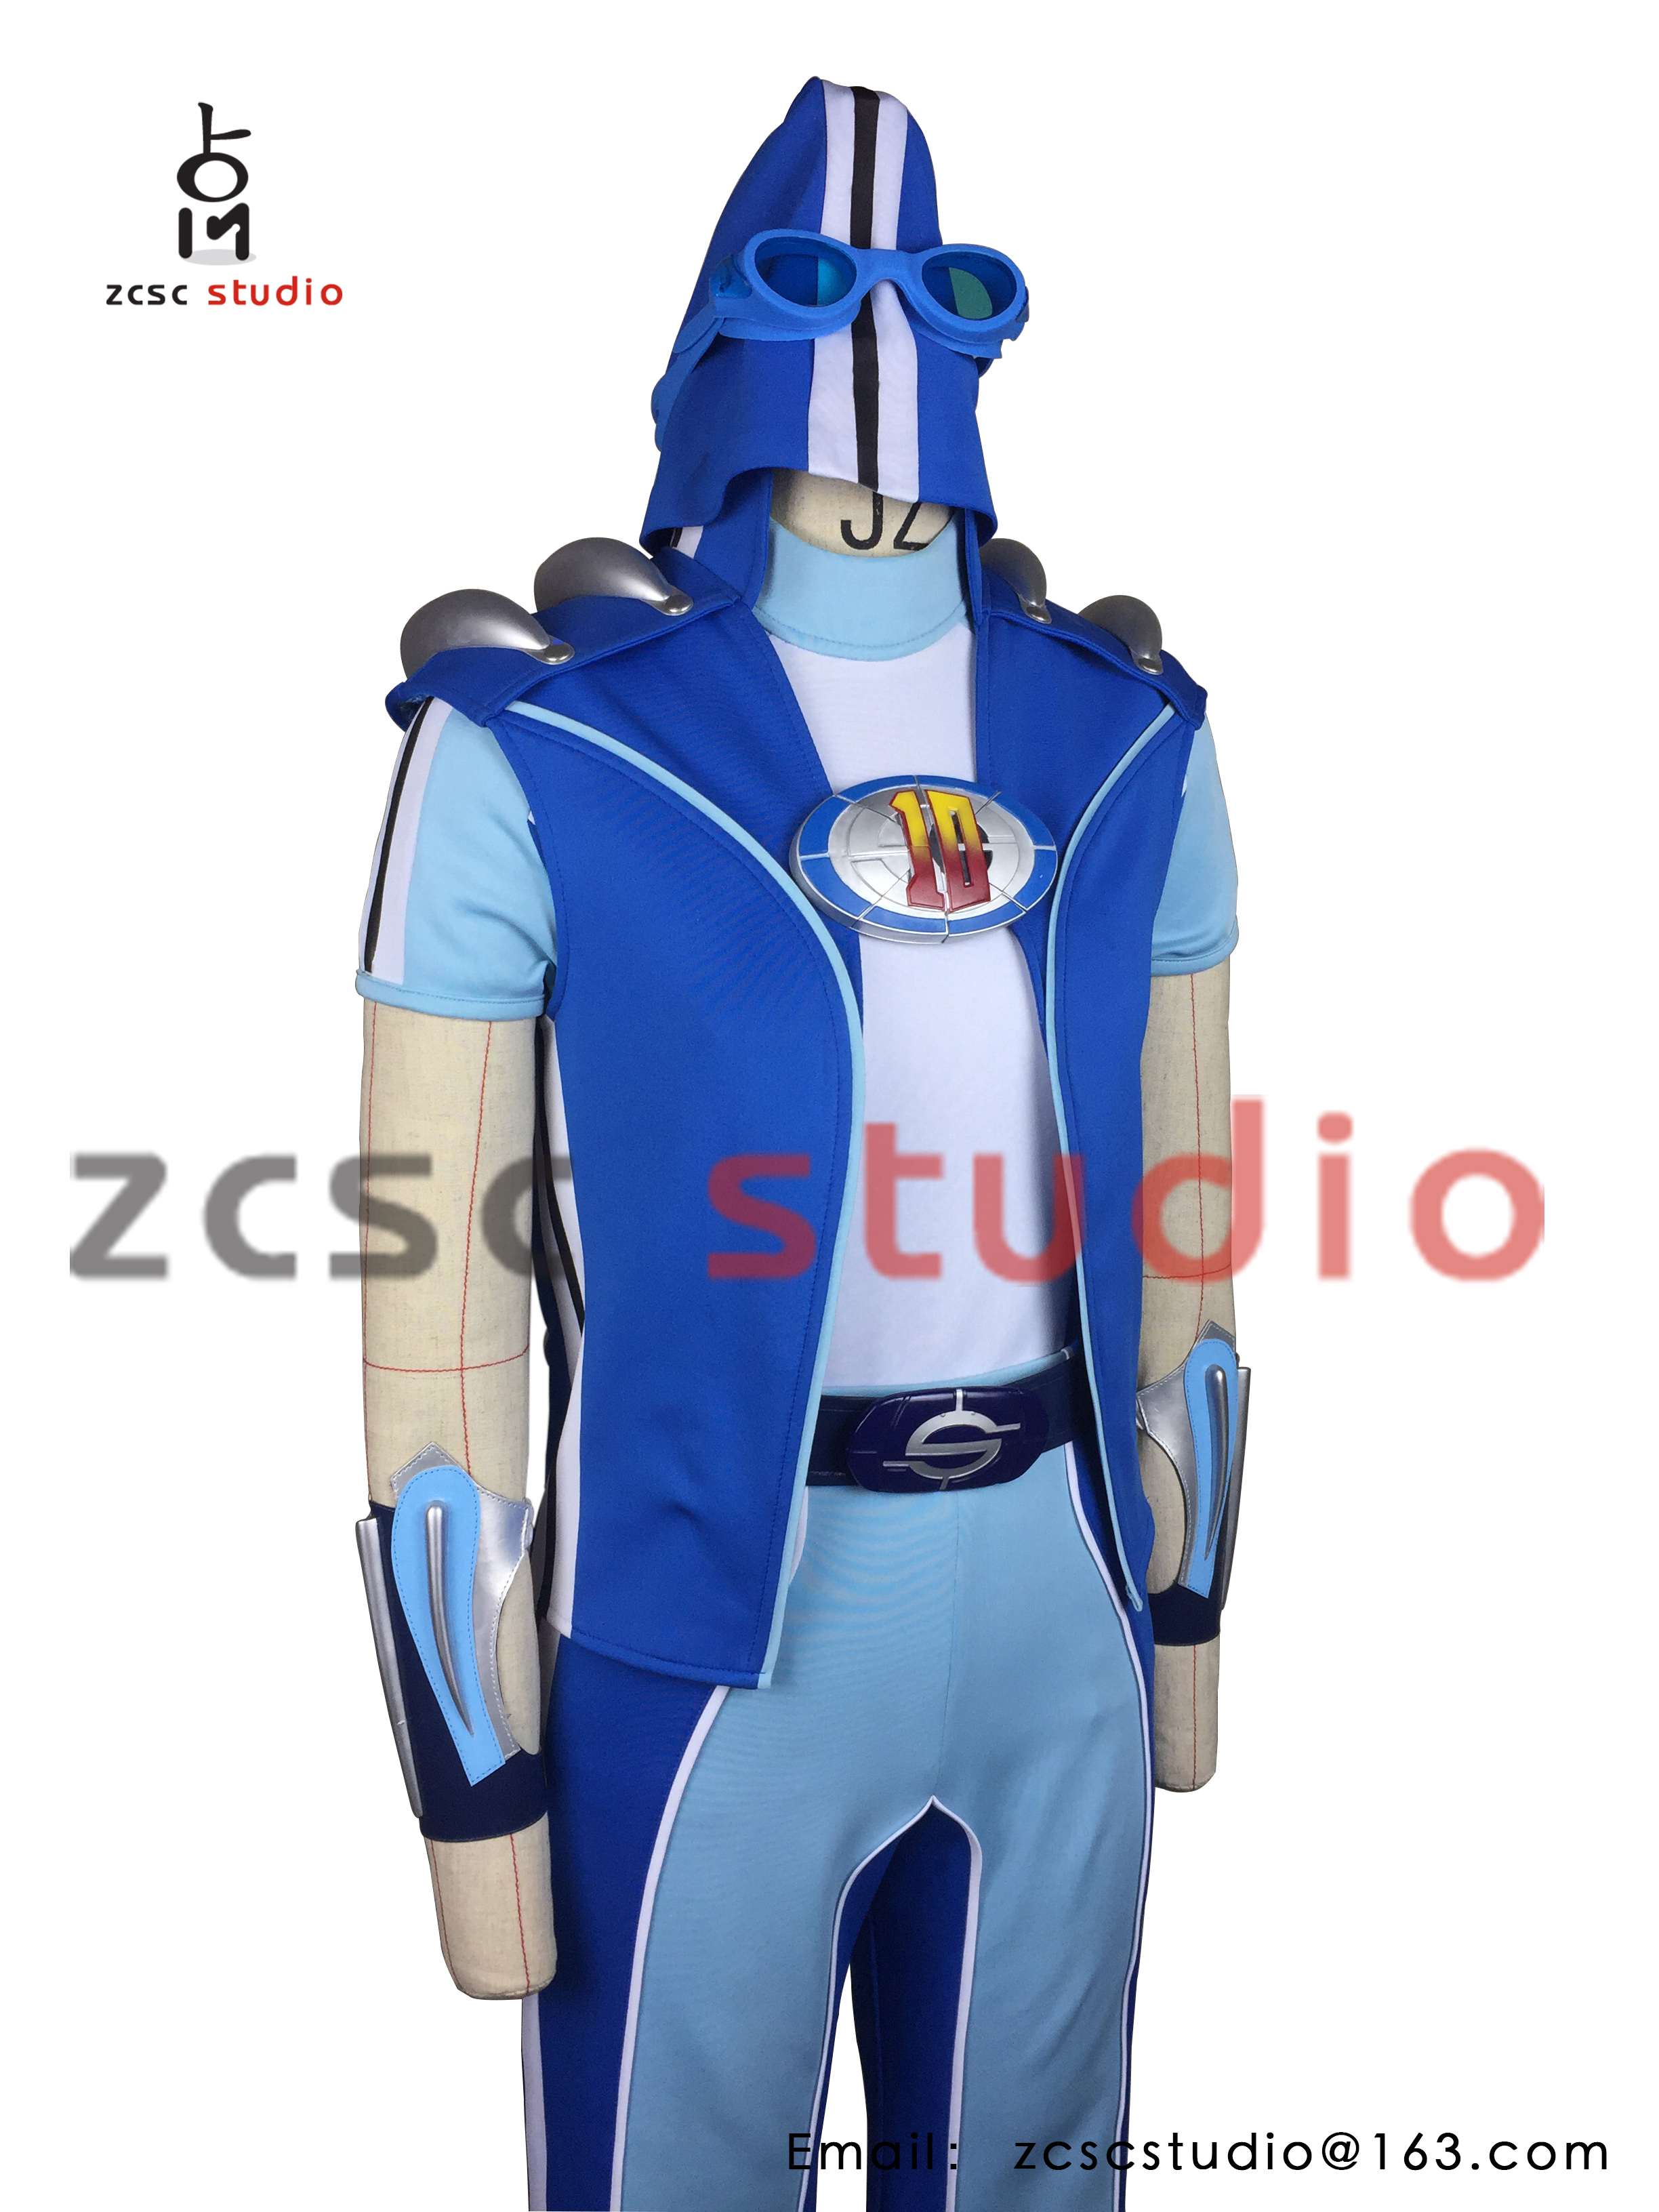 SPORTACUS Costume Child Toddler Size 3T-4T LAZY TOWN | eBay. Sportacus  Lazytown Cosplay Adults